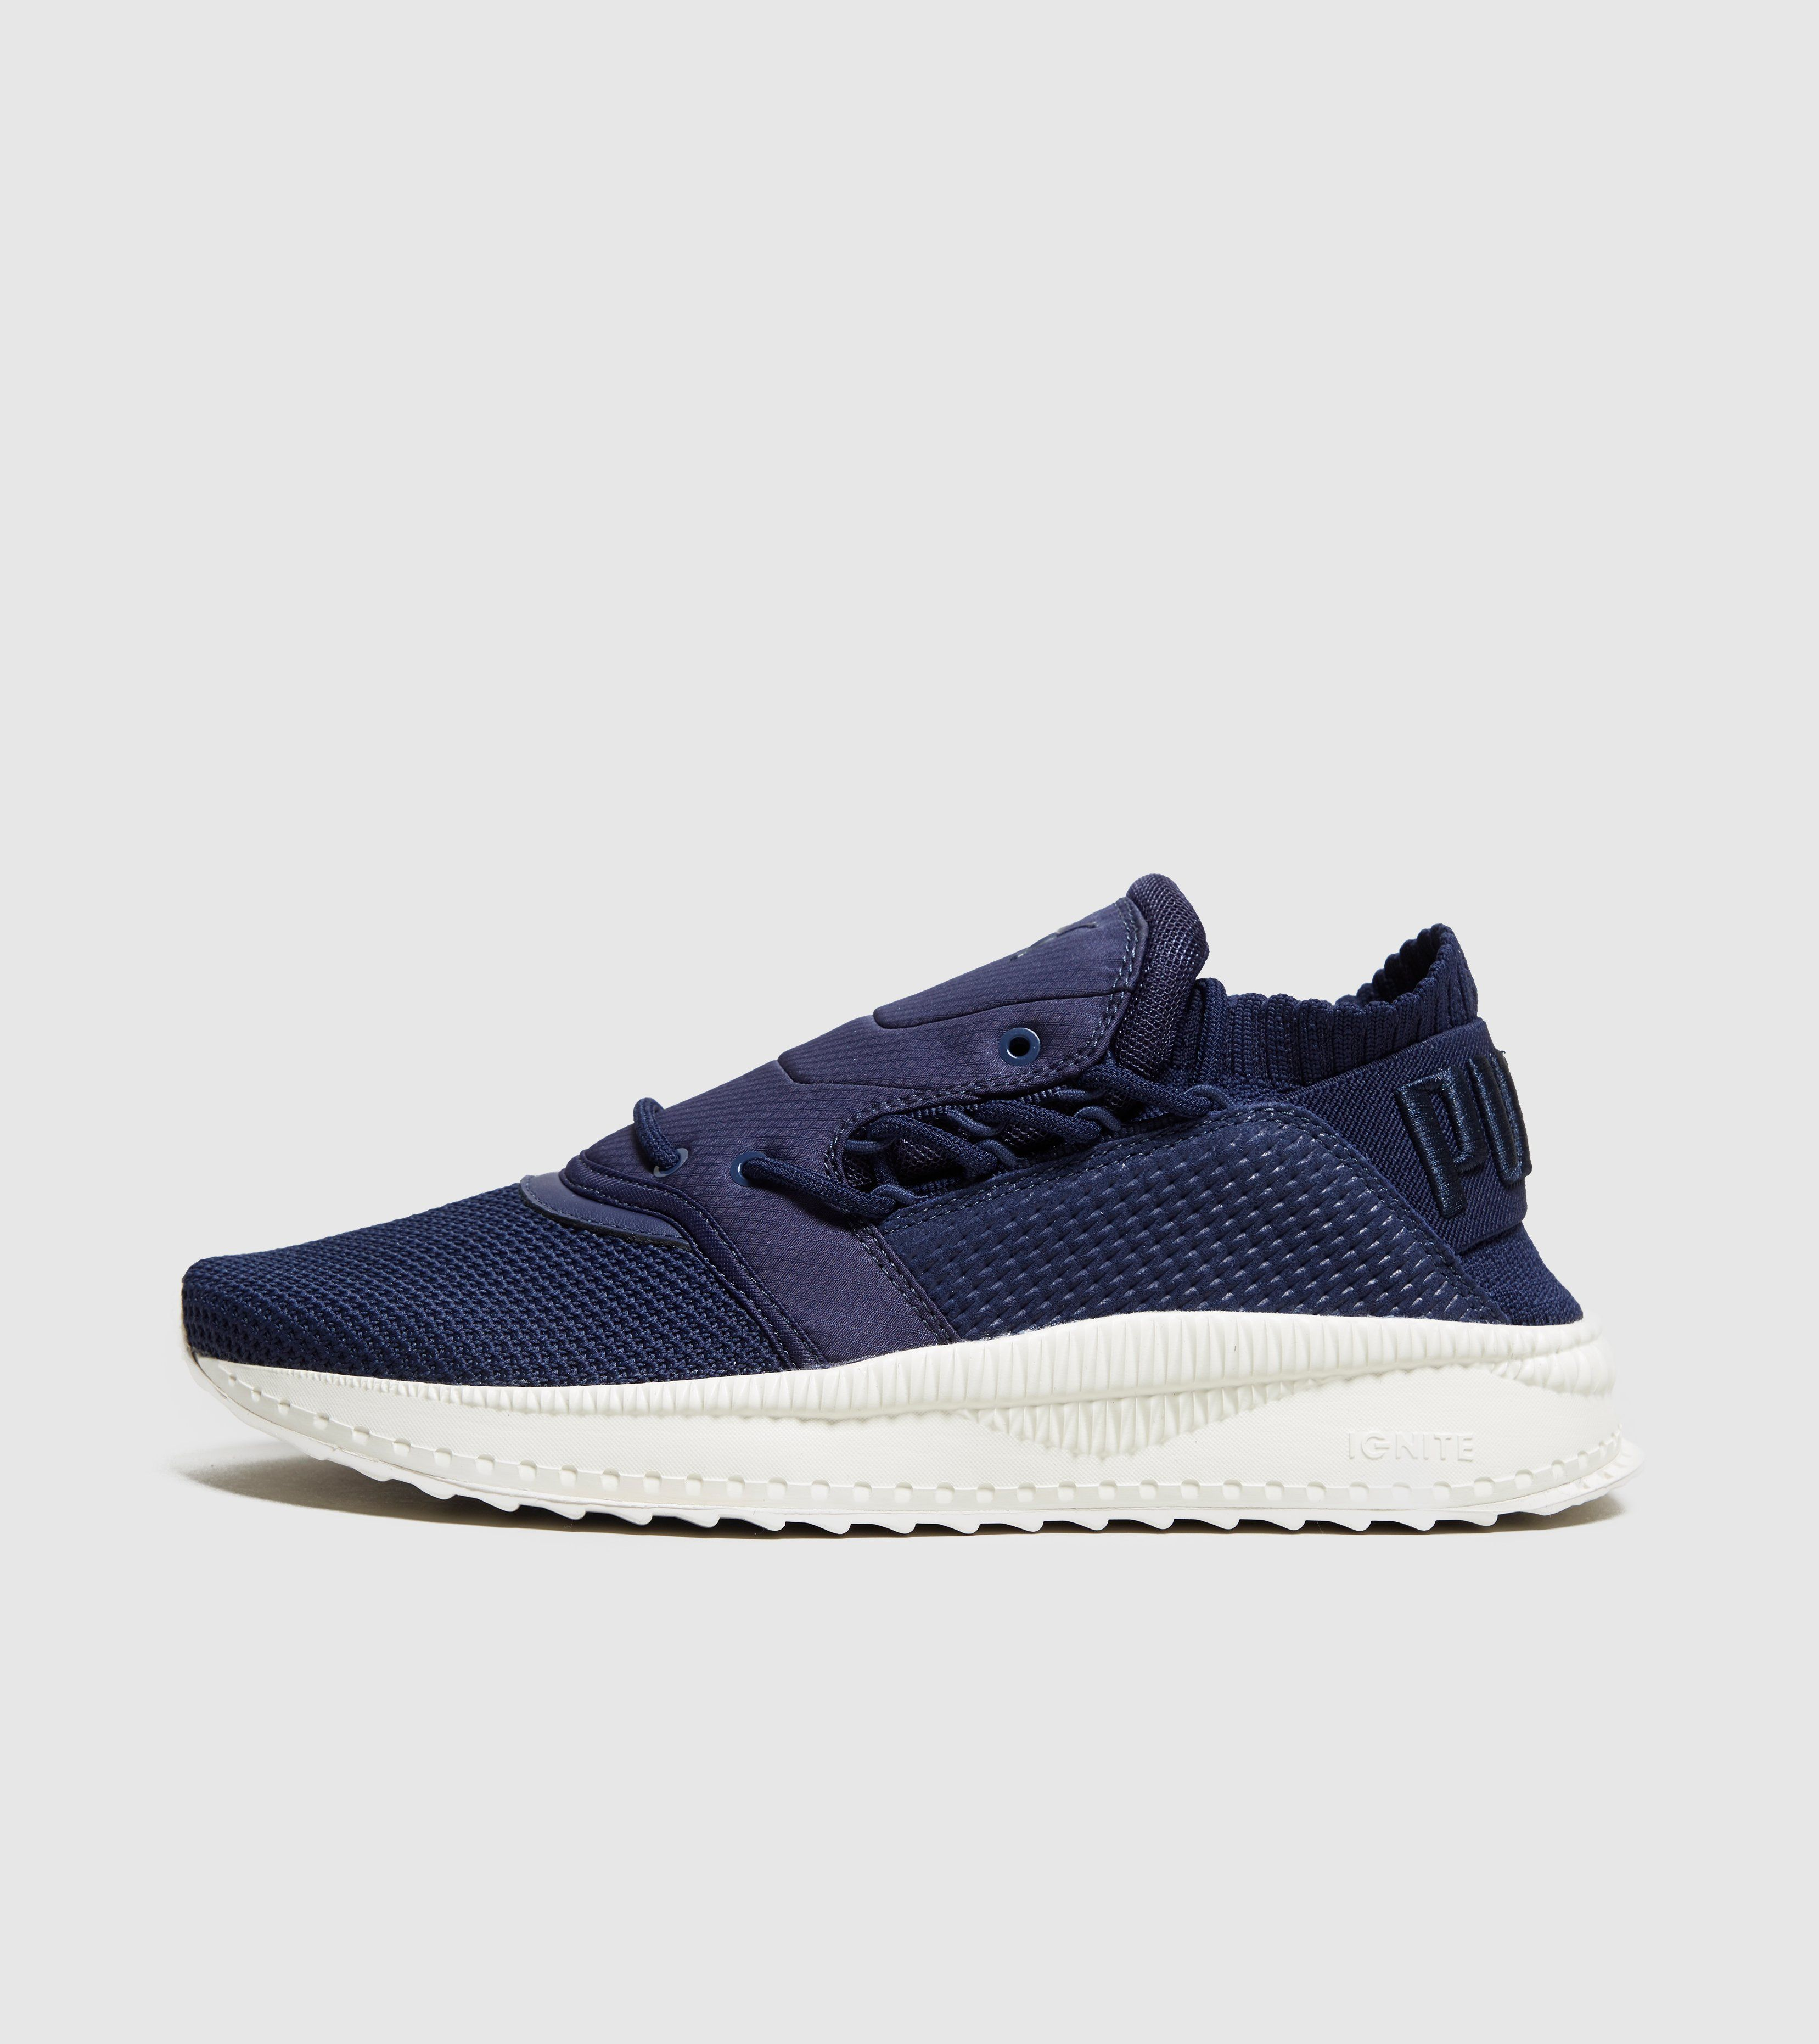 72455283ef81 wholesale dealer 6f8cf 5f9d5 puma tsugi shinsei raw puma whitepuma ...